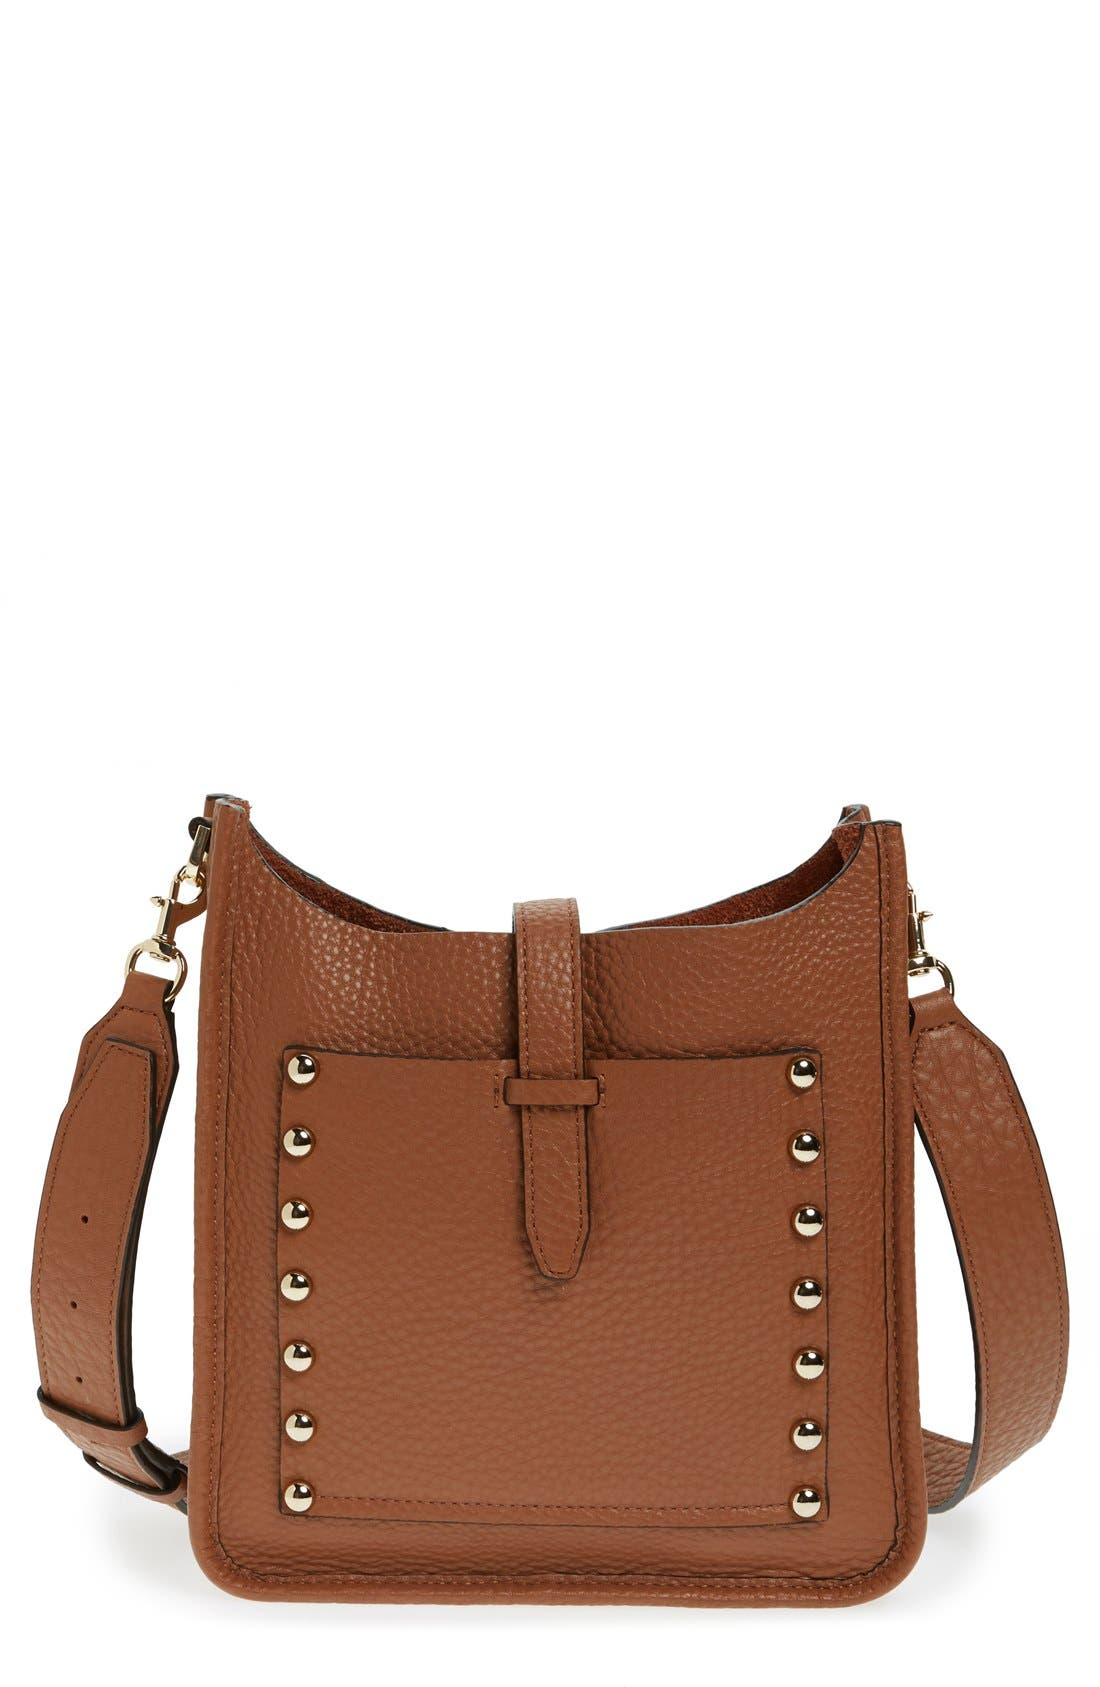 REBECCA MINKOFF, Small 'Feed' Bag, Main thumbnail 1, color, 230